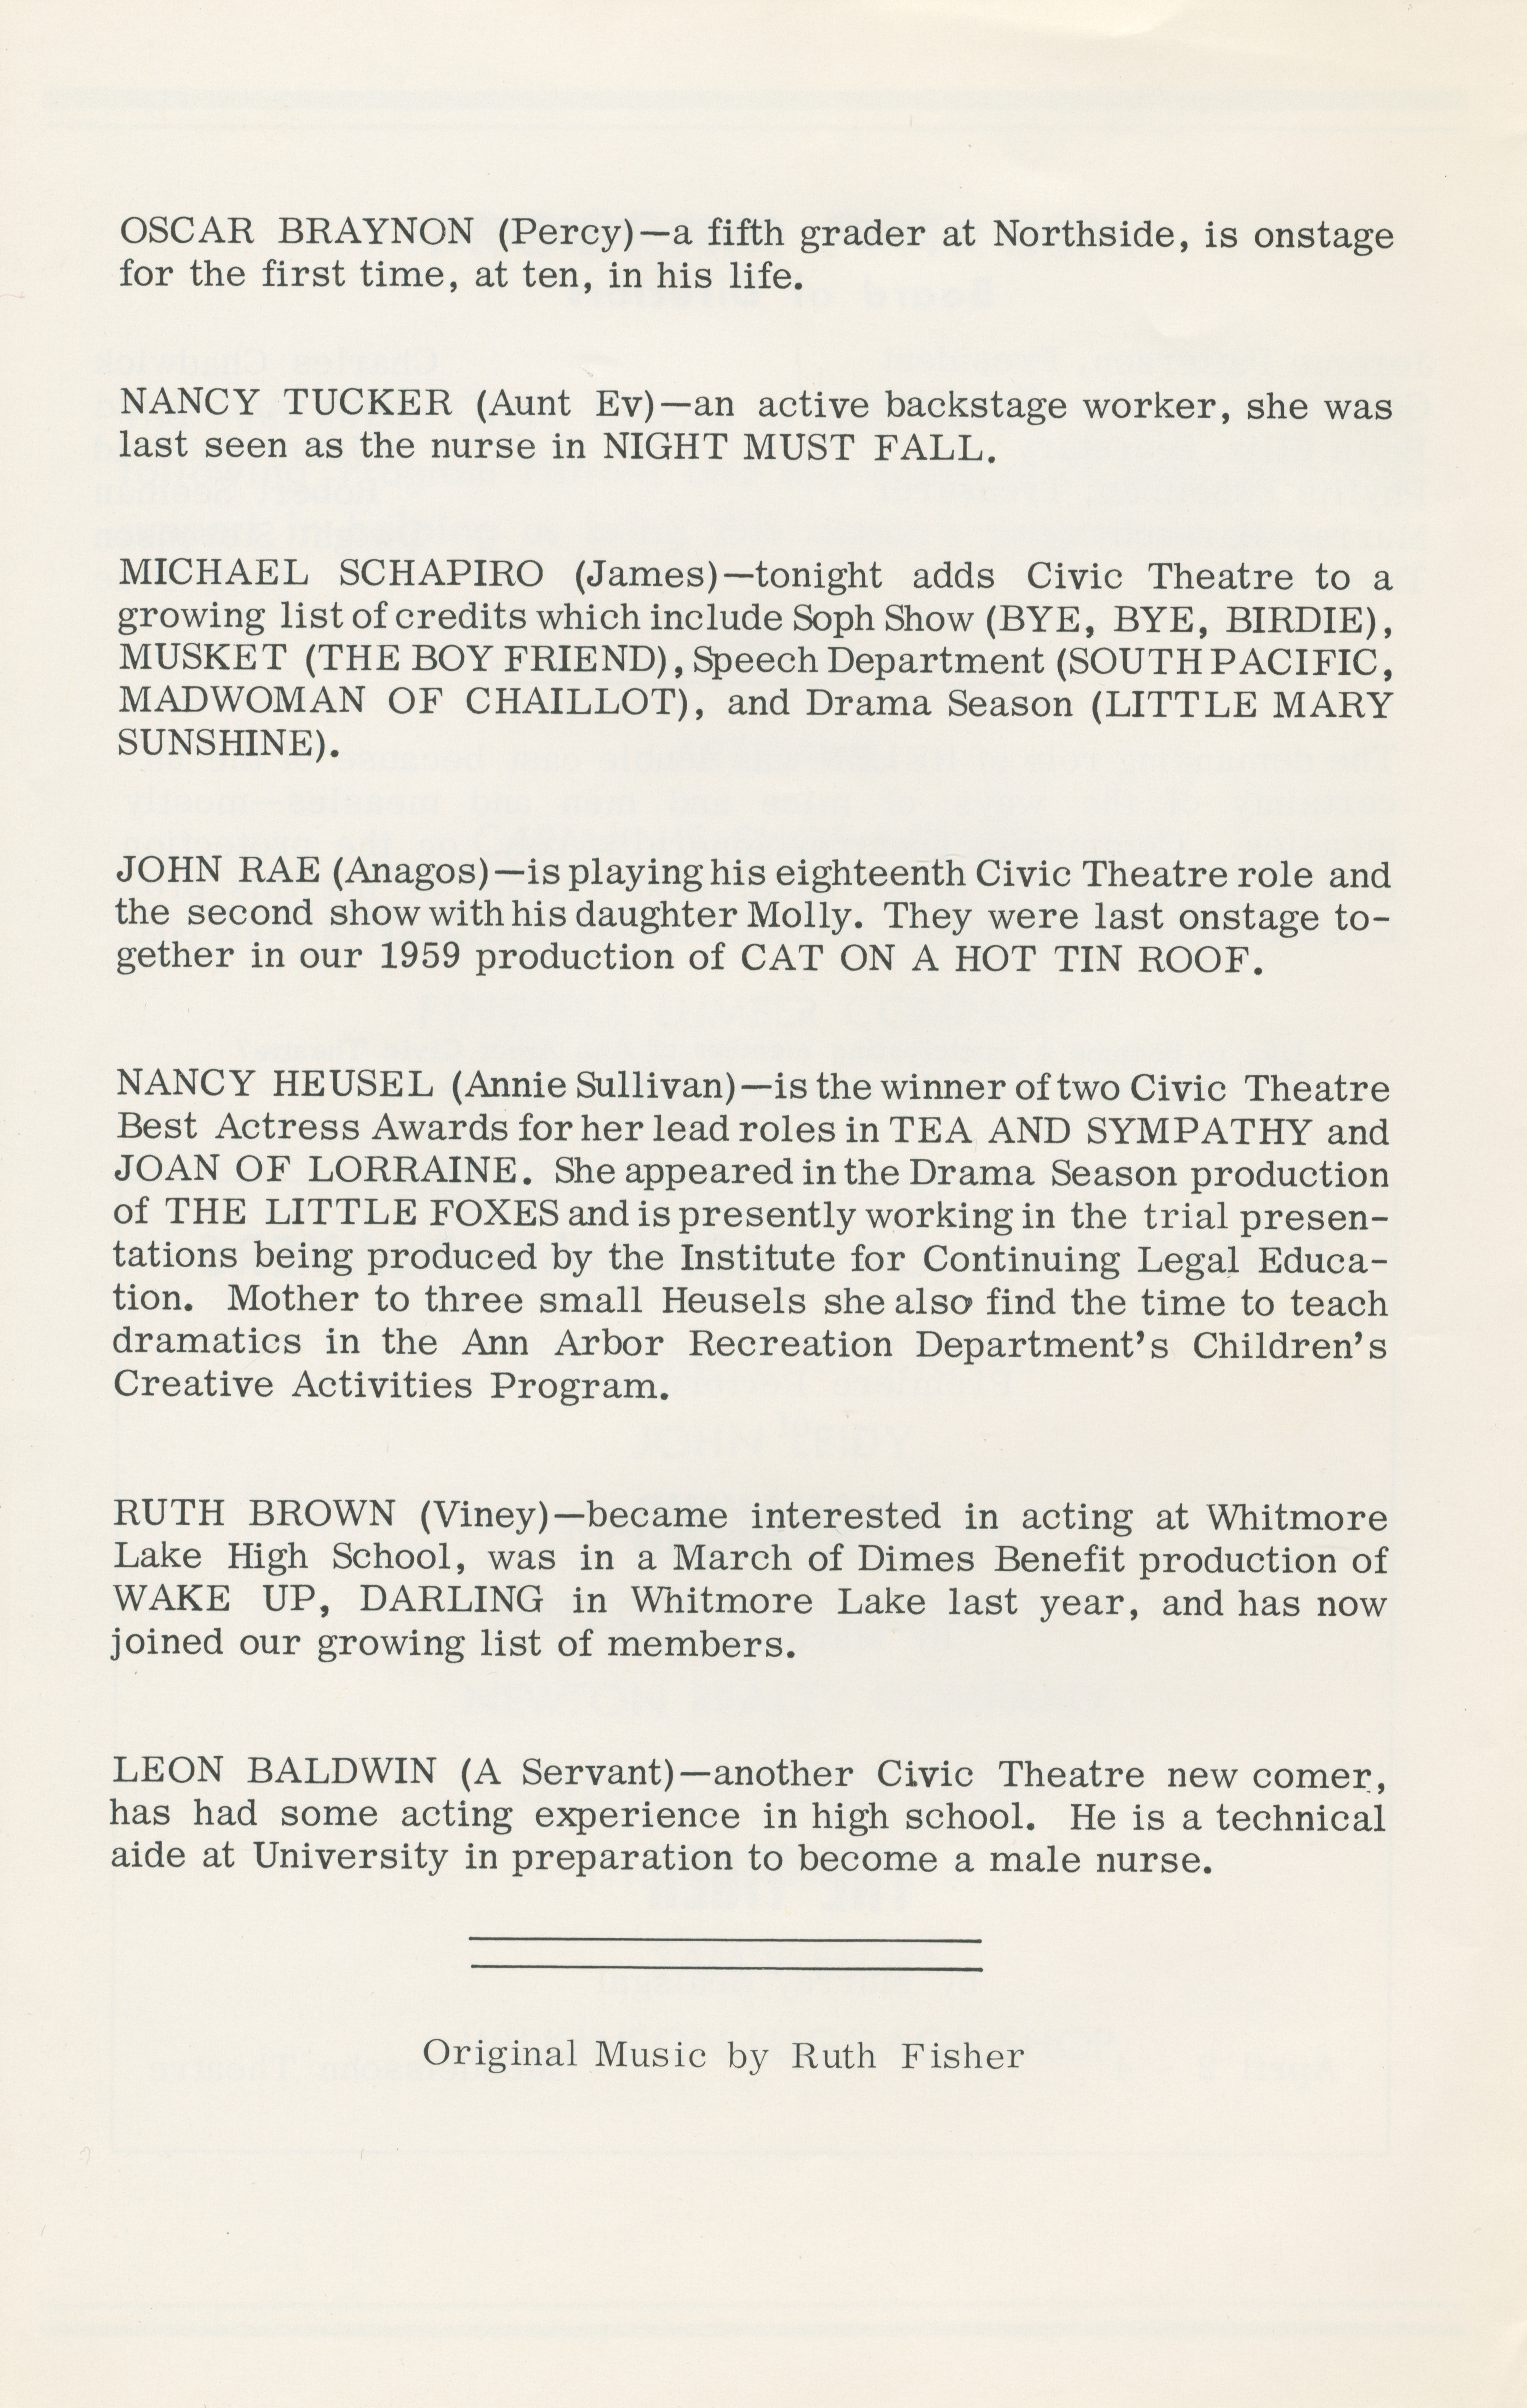 Ann Arbor Civic Theatre Program: The Miracle Worker, March 19, 1964 image